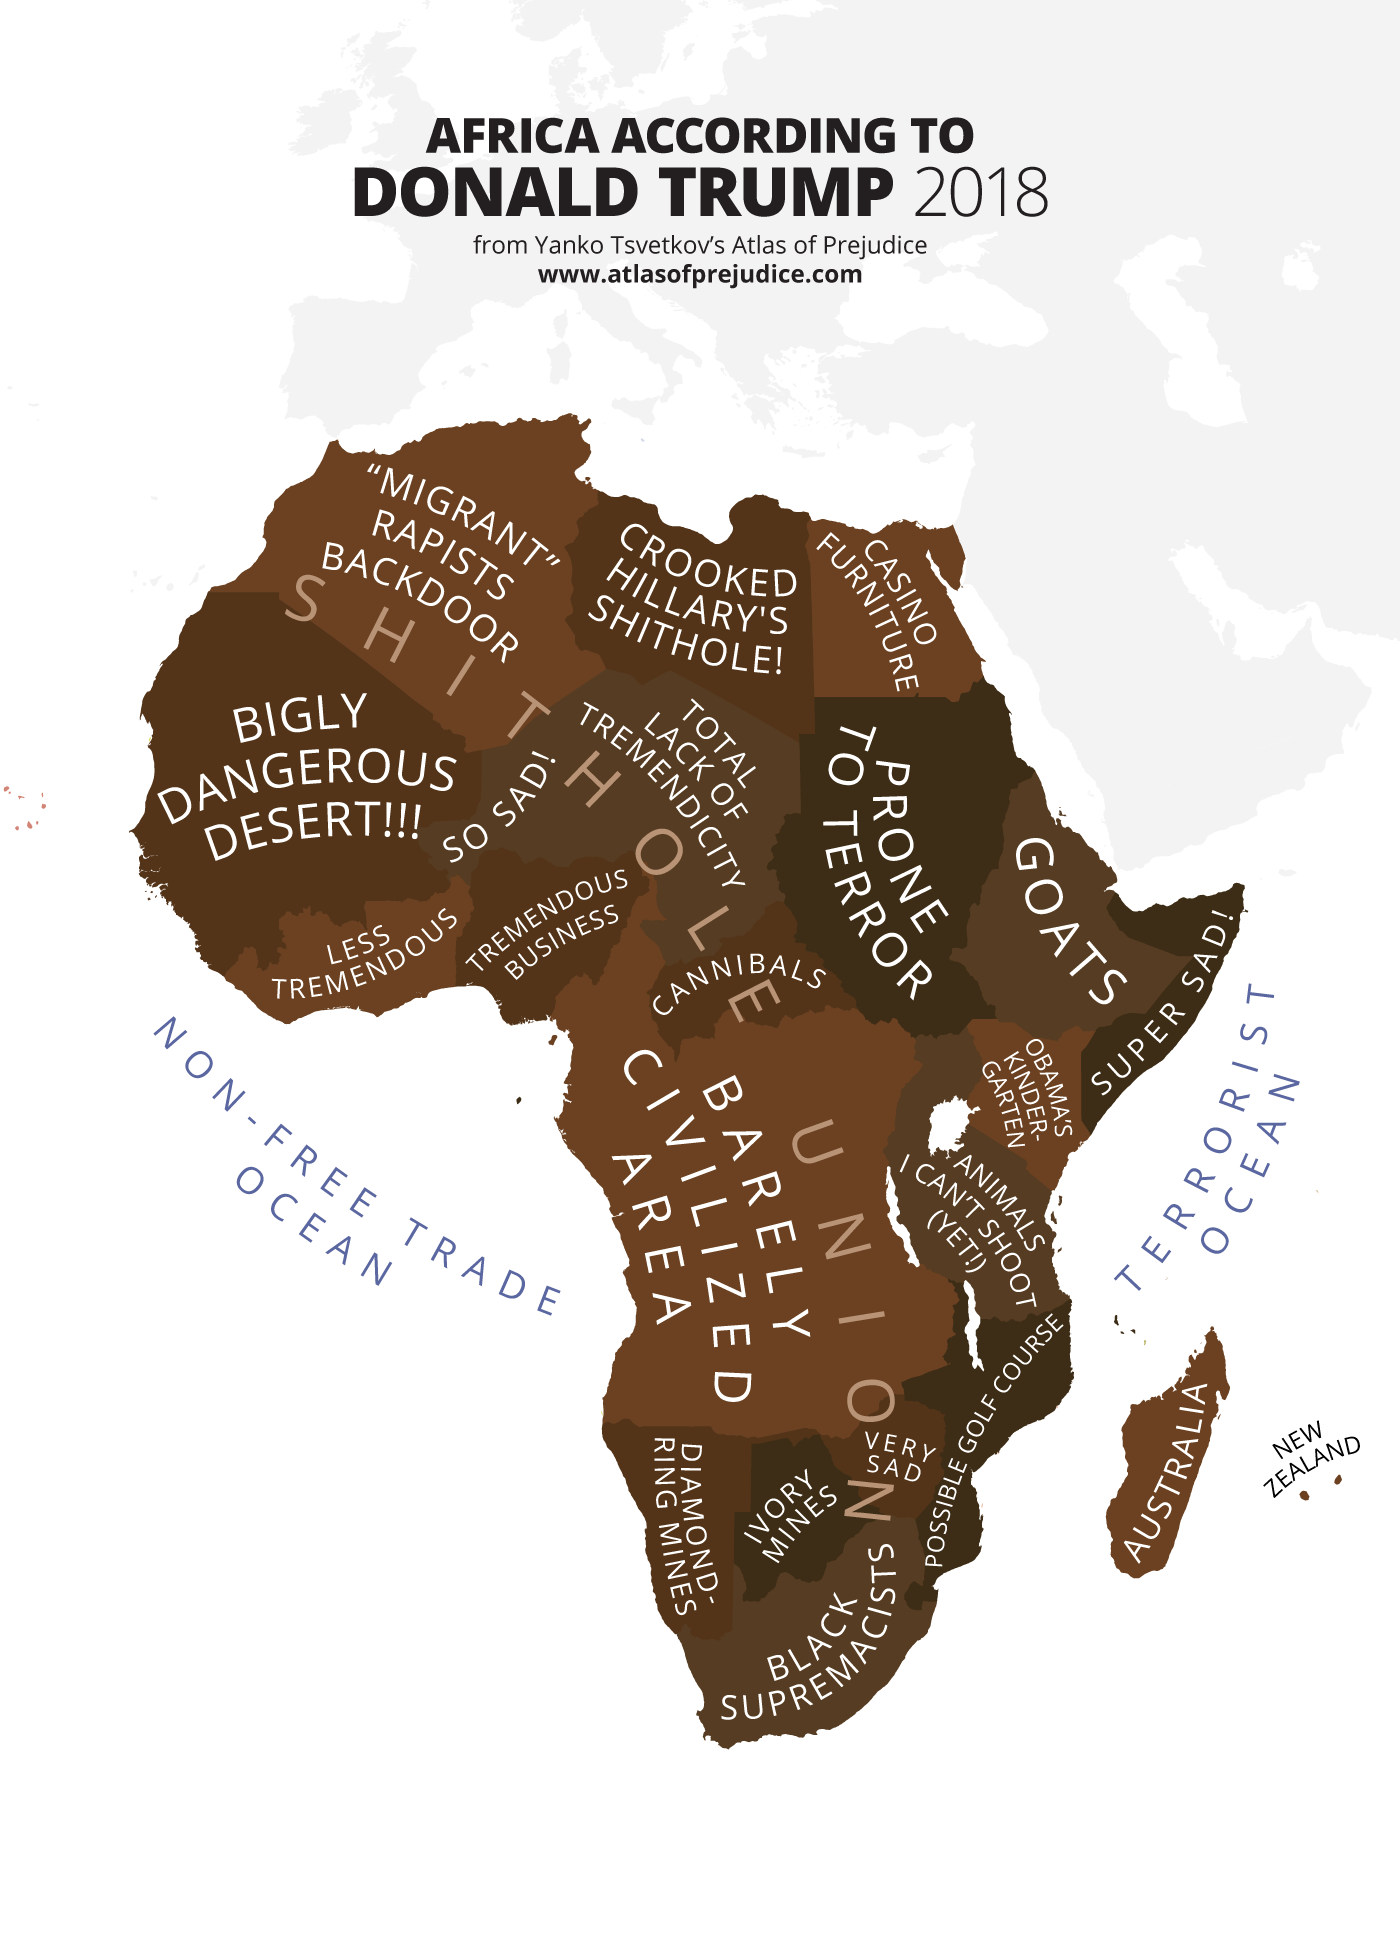 Africa According to Donald Trump - Atlas of Prejudice on nationalism of africa, community of africa, subcultures of africa, perceptions of africa, identity of africa, labels of africa, nature of africa, love of africa, society of africa, resistance of africa, caste system of africa, women of africa, books of africa, misconceptions of africa, education of africa, family of africa, stereotypes about men, racism of africa, babies of africa,